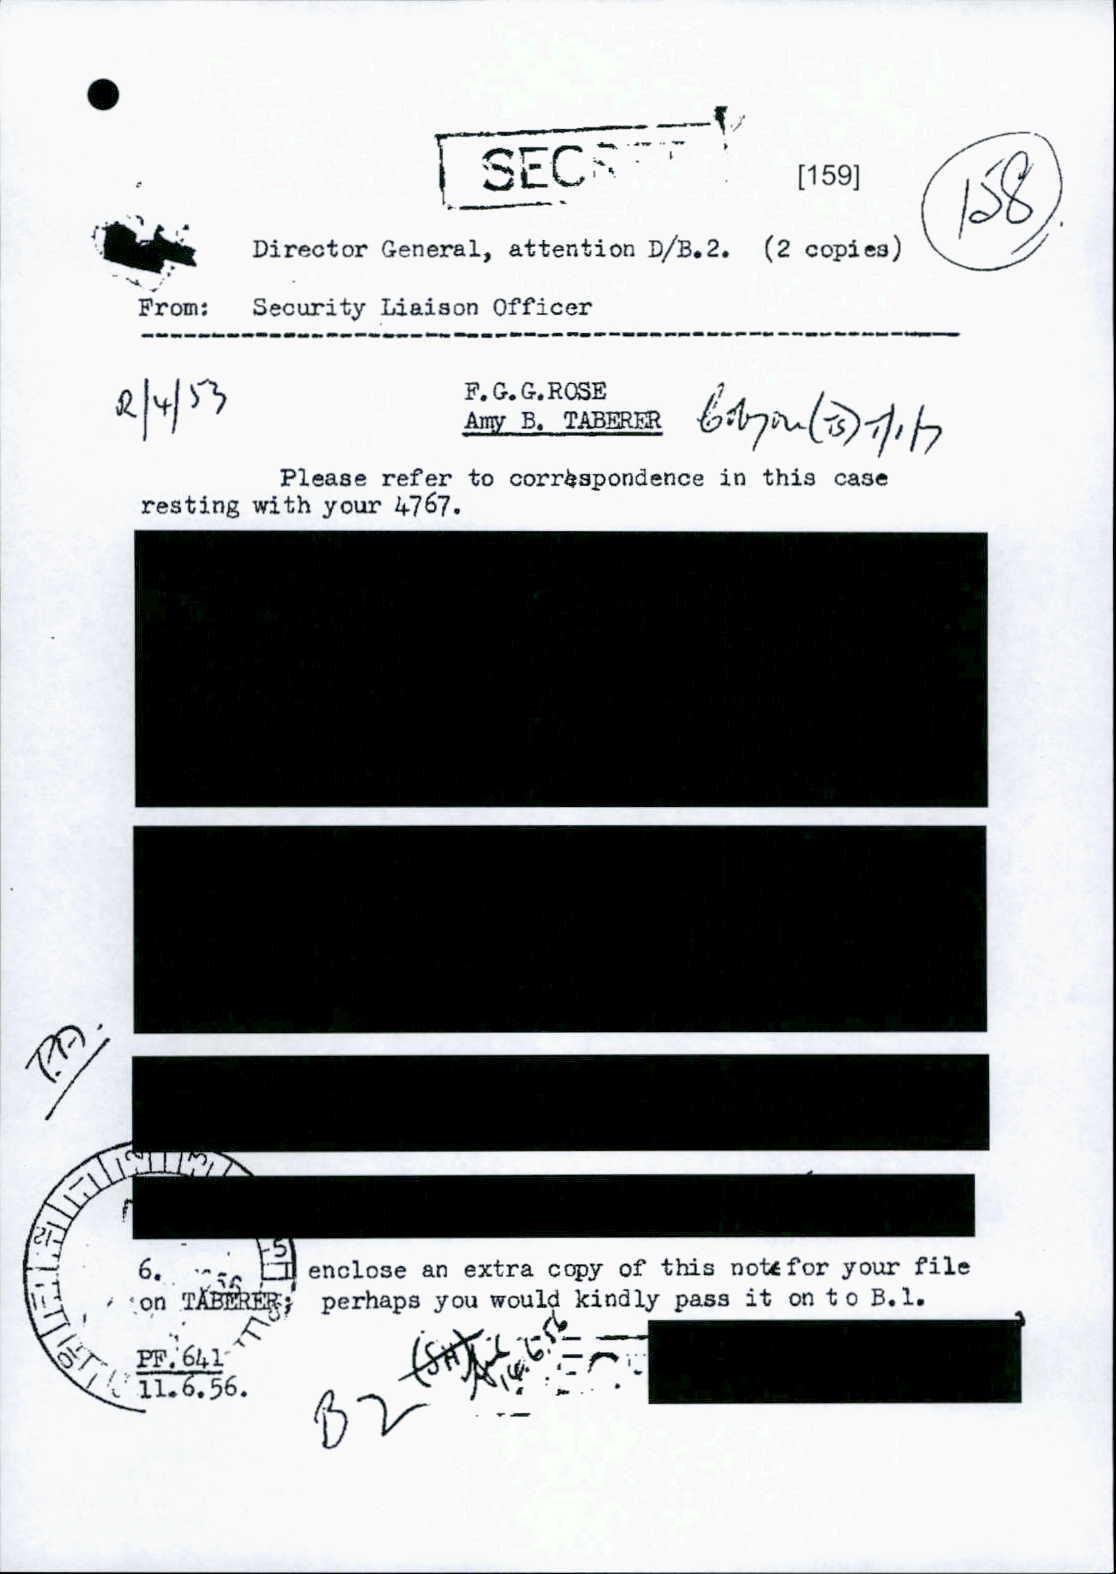 Current frontrunner for the most heavily redacted #ASIO document is… https://t.co/HvnjFdsMJM